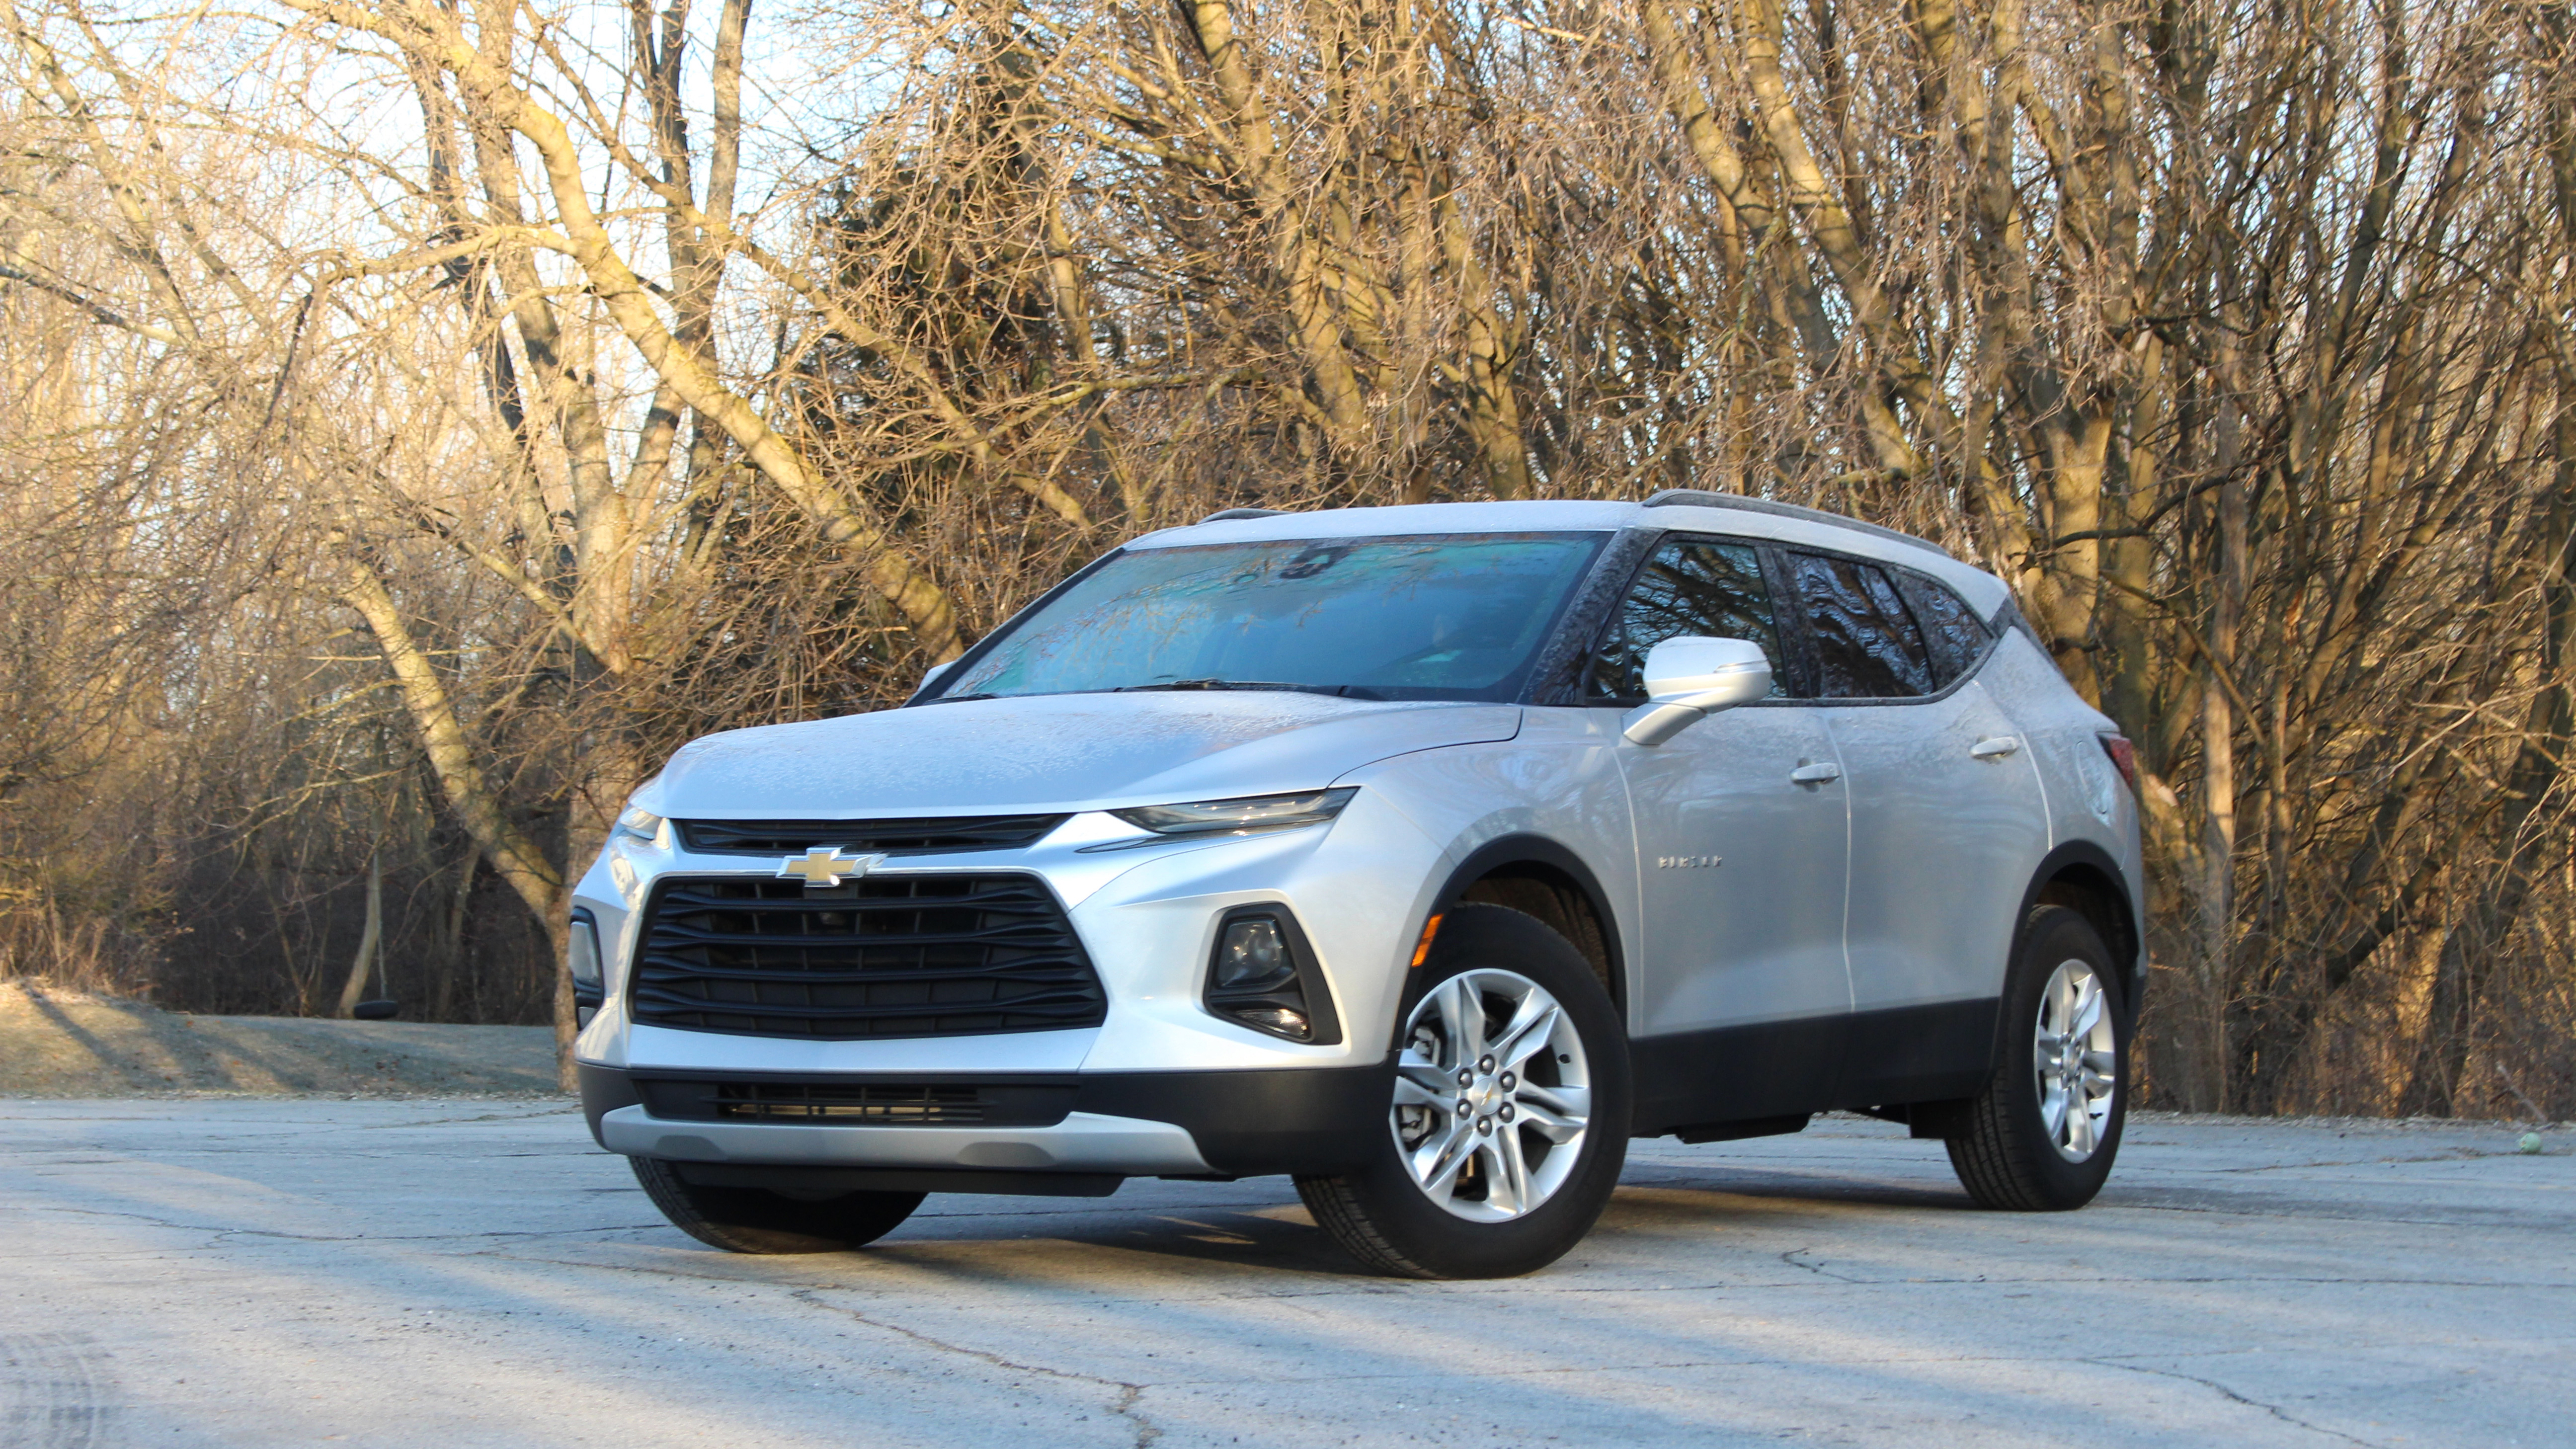 2020 Chevy Blazer Review Price Features Specs And Photos Autoblog